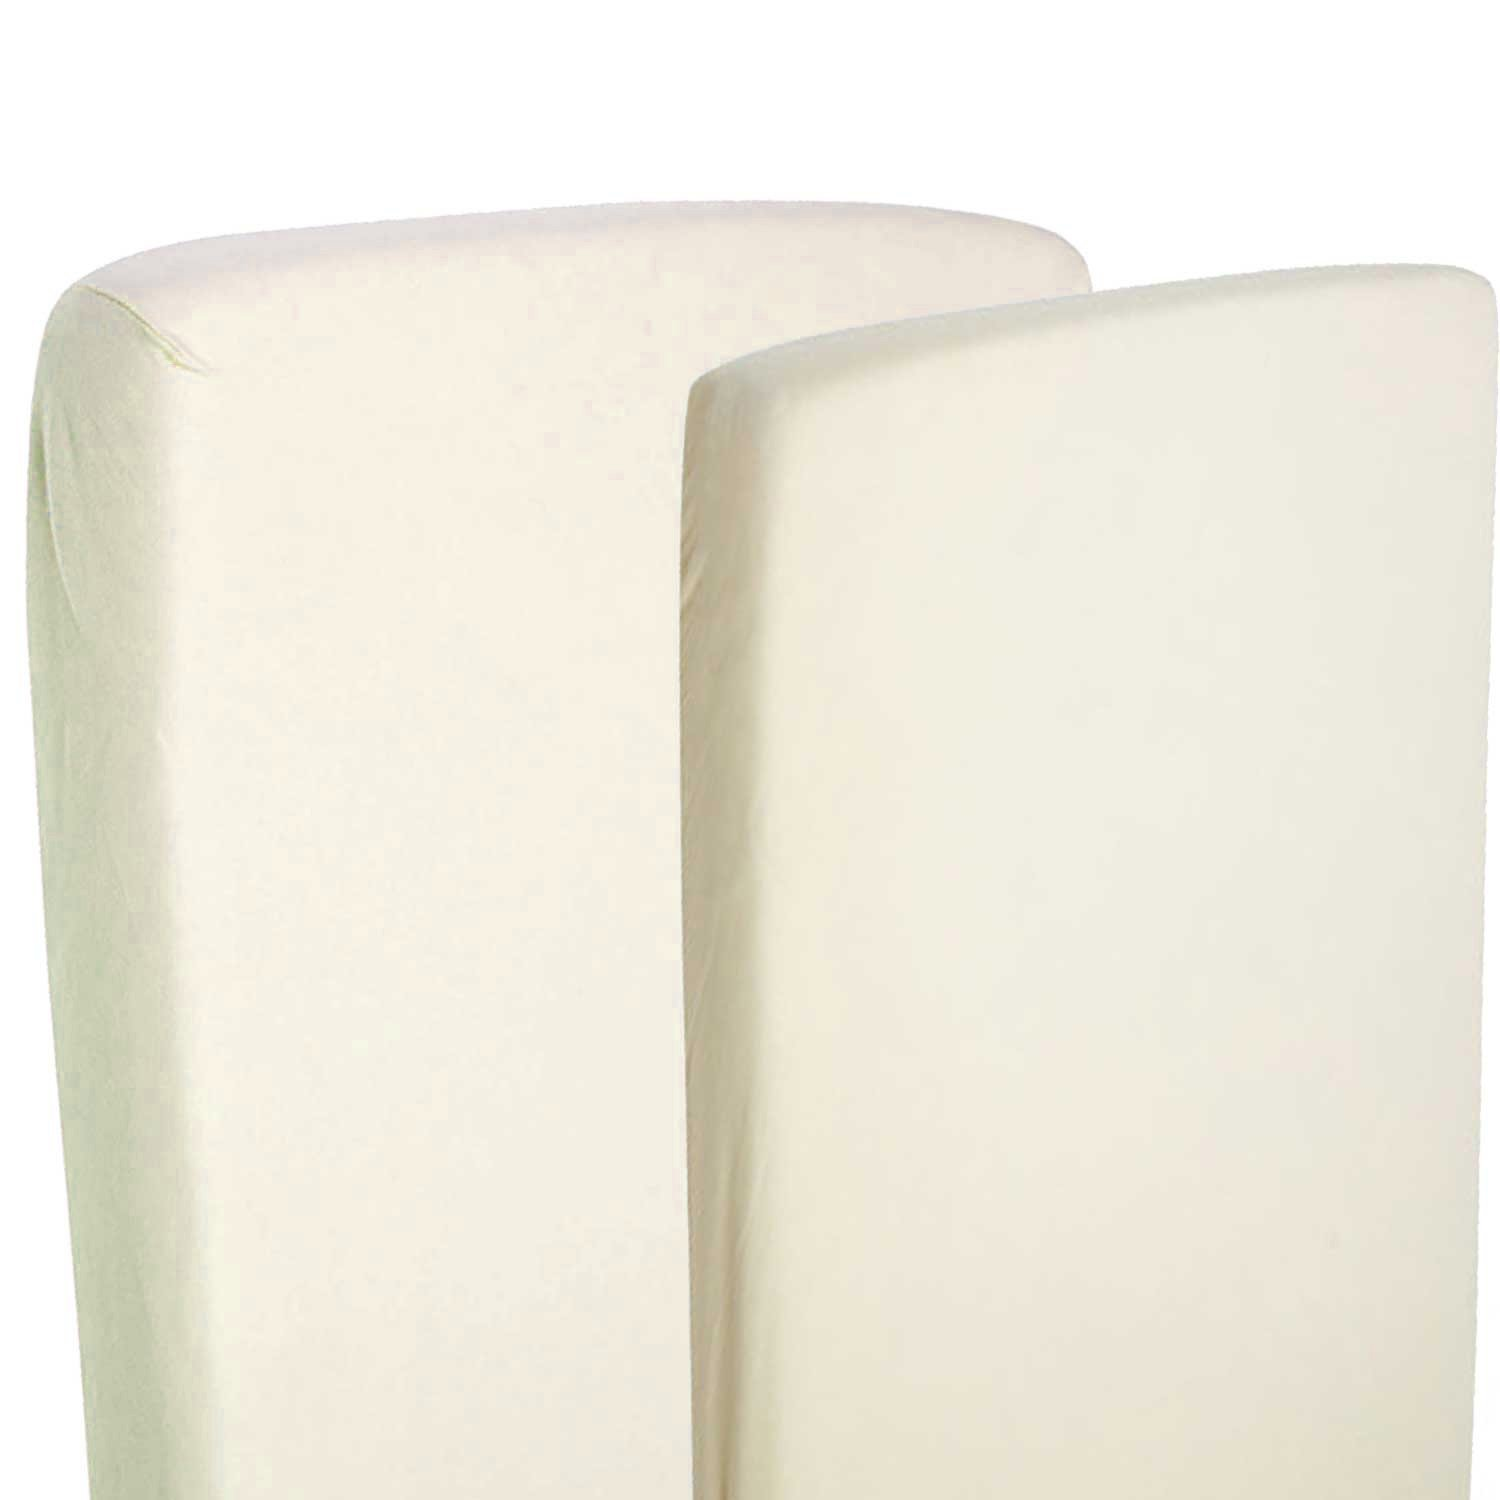 2x Fitted Sheets Compatible With Snuzpod Bedside Crib 100% Cotton - Cream-By For-Your-Little-One